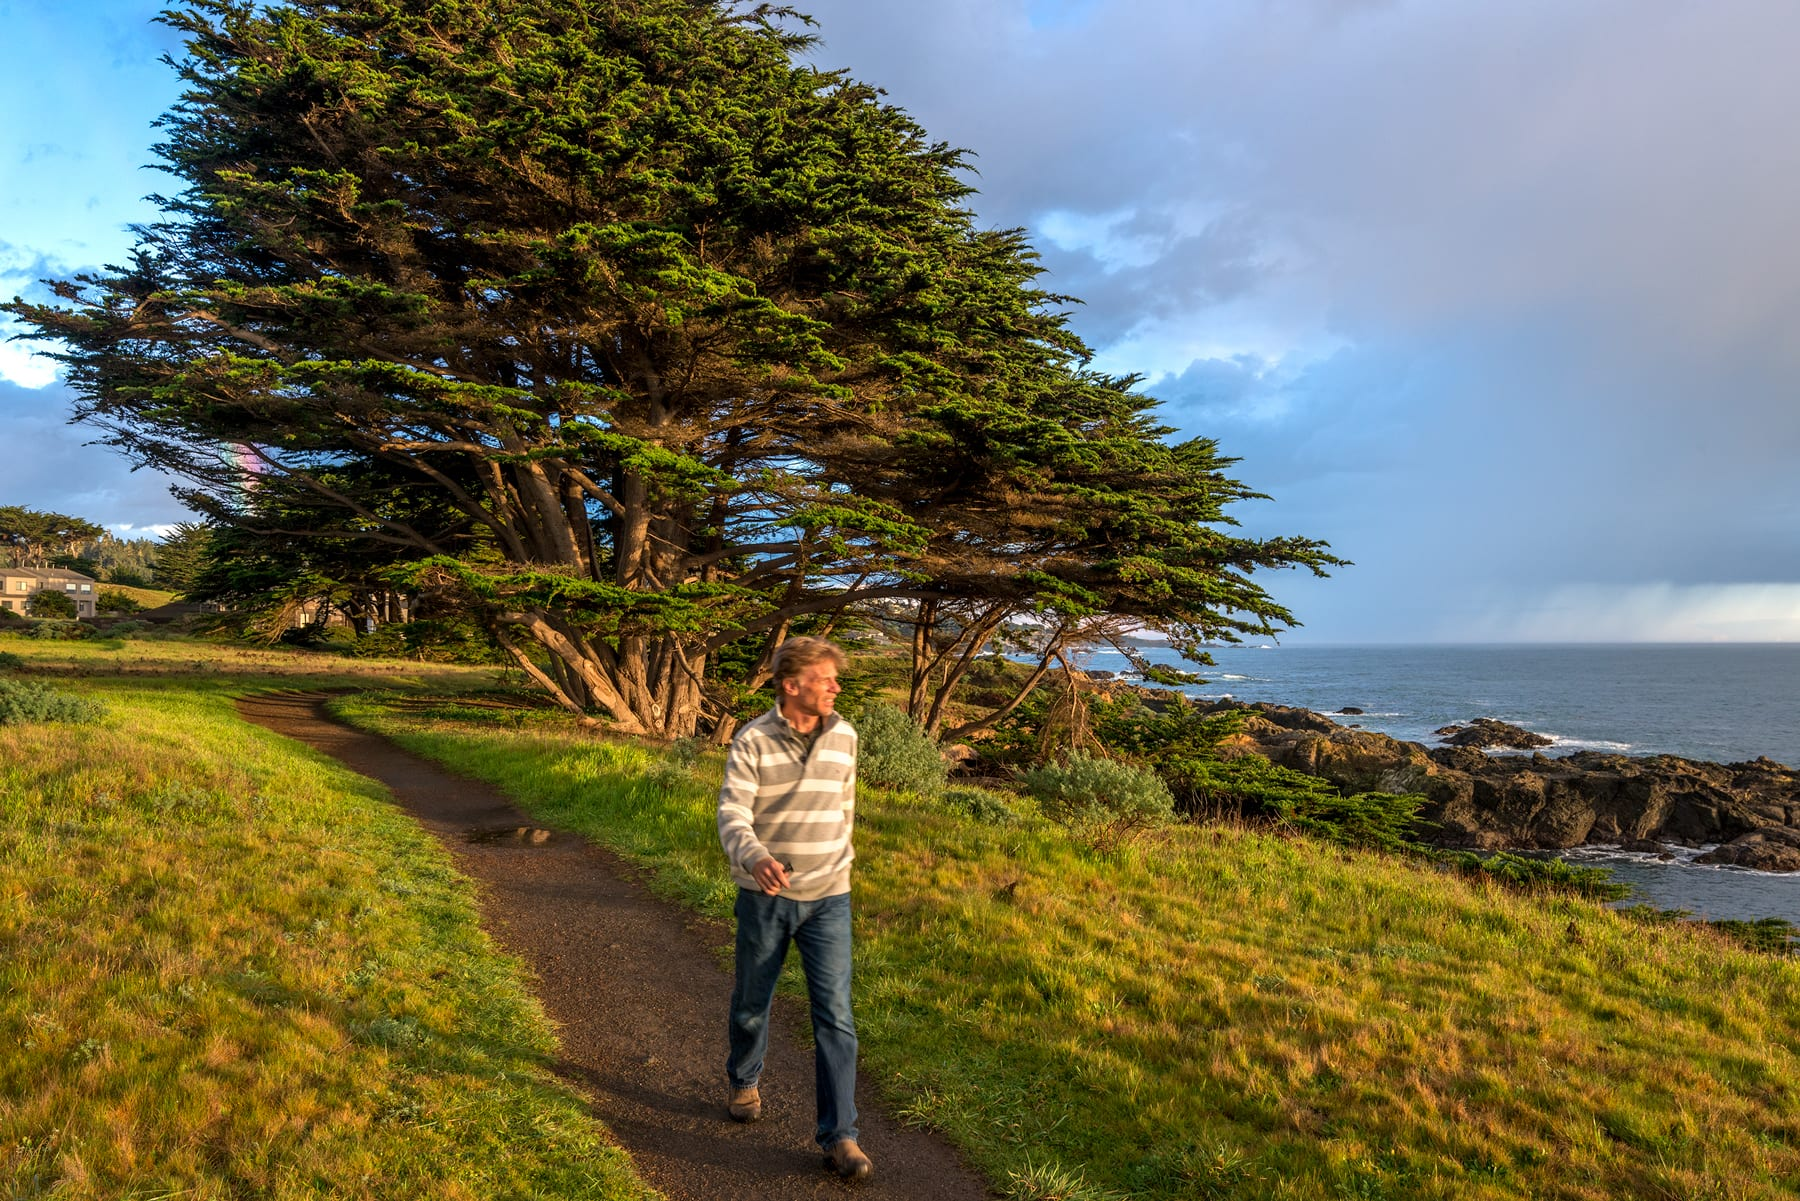 Sea Ranch Trails Available on Google Street View